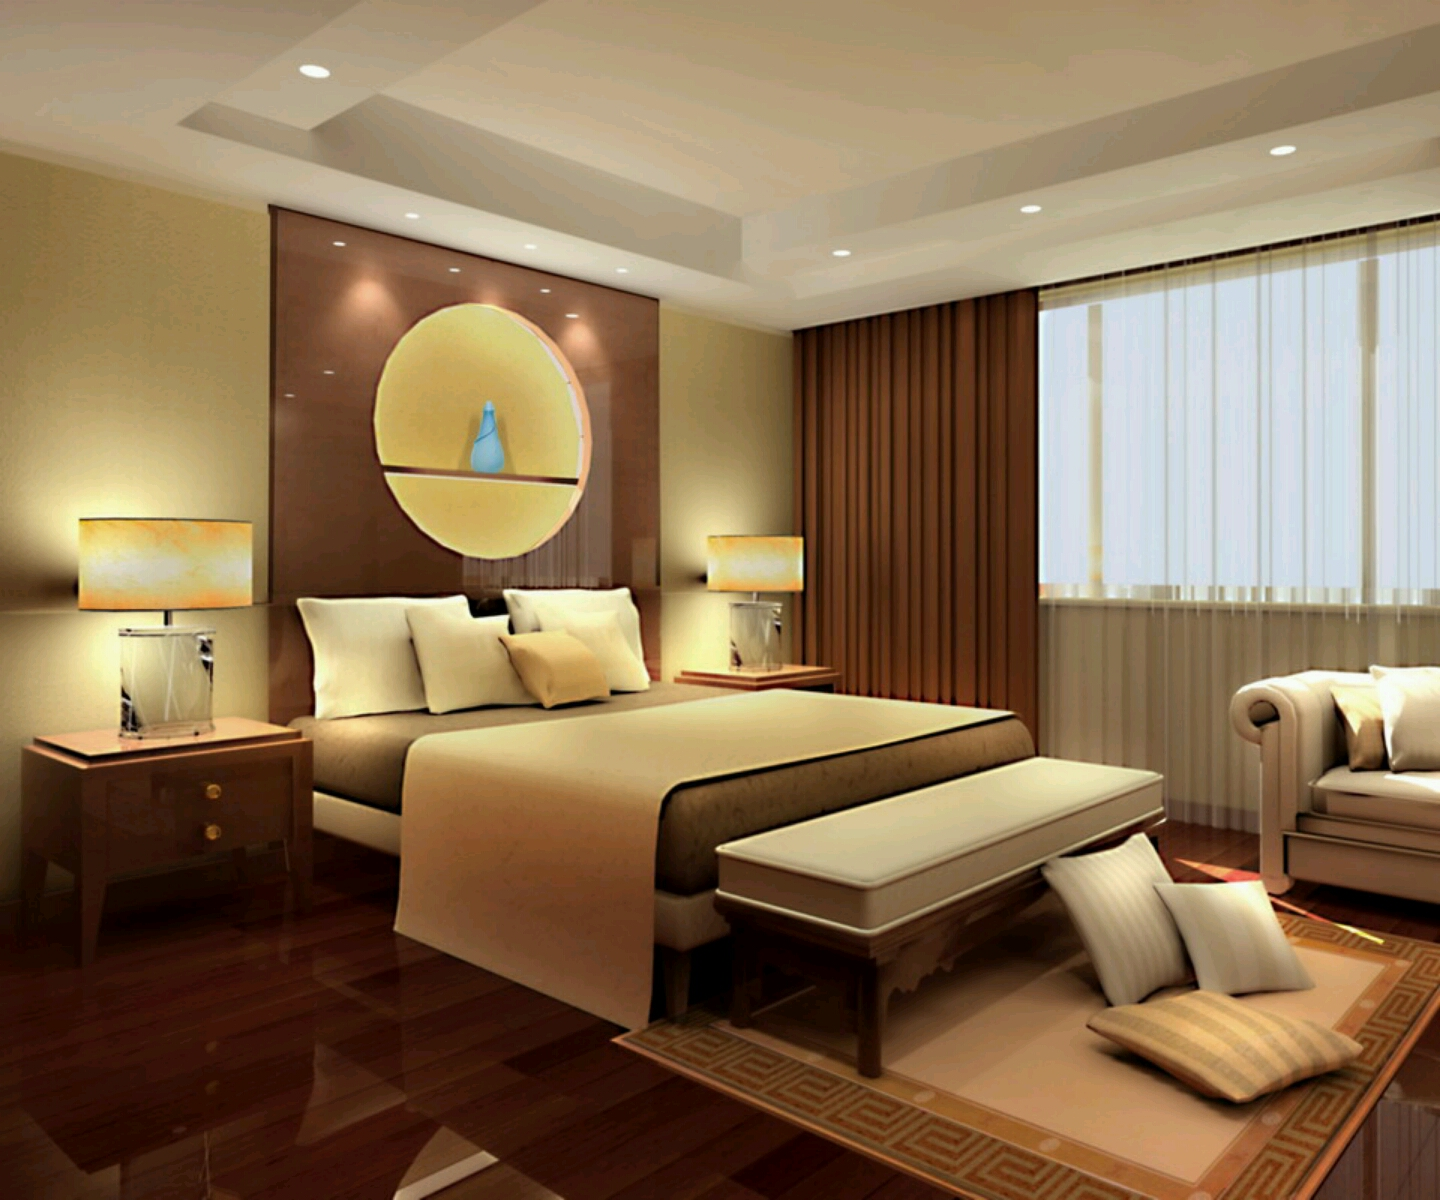 New home designs latest modern beautiful bedrooms for Modern bedroom interior